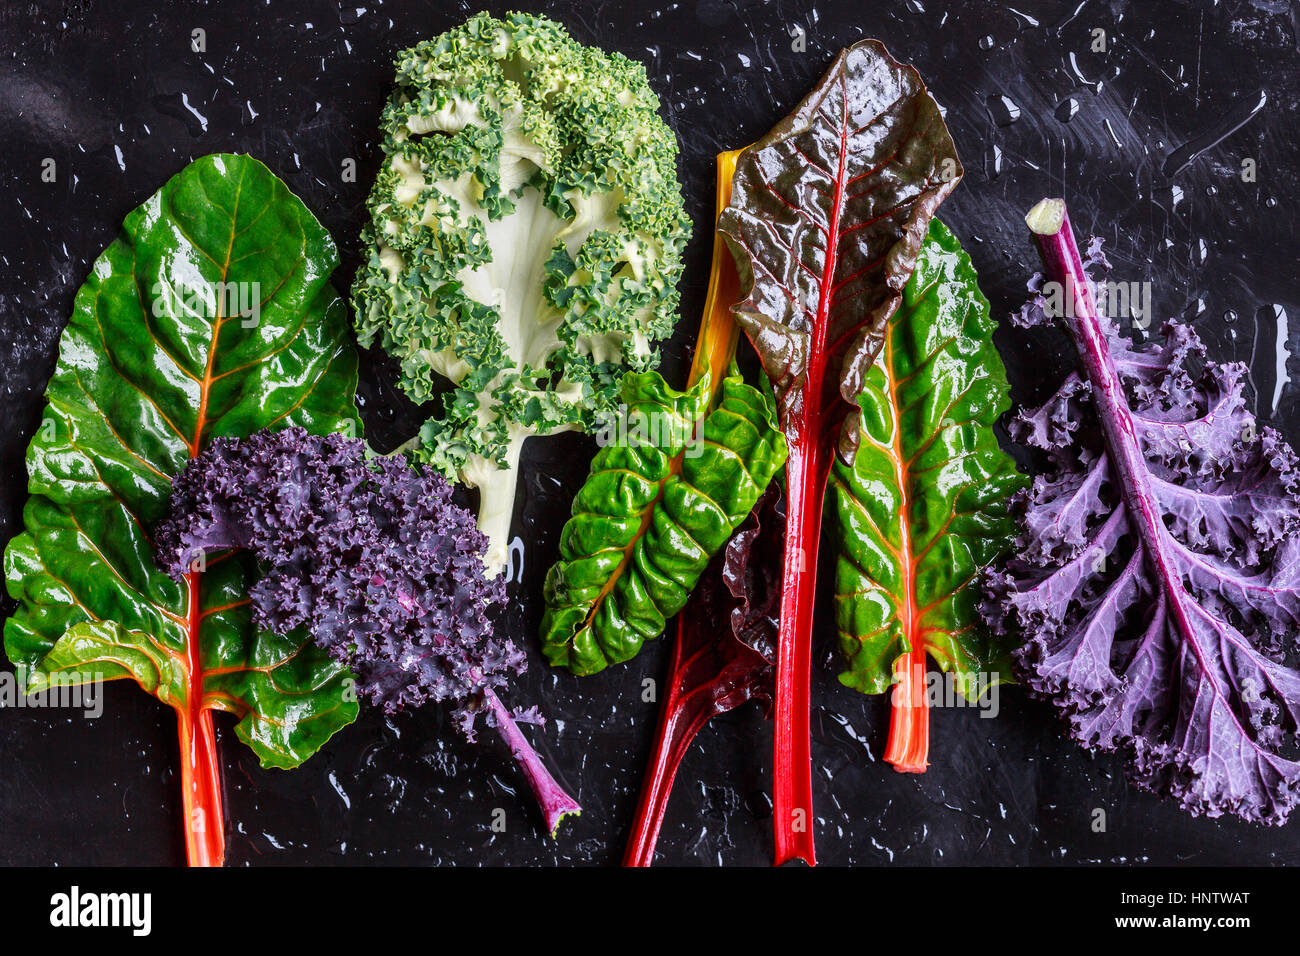 Purple Kale and swiss chard - Stock Image